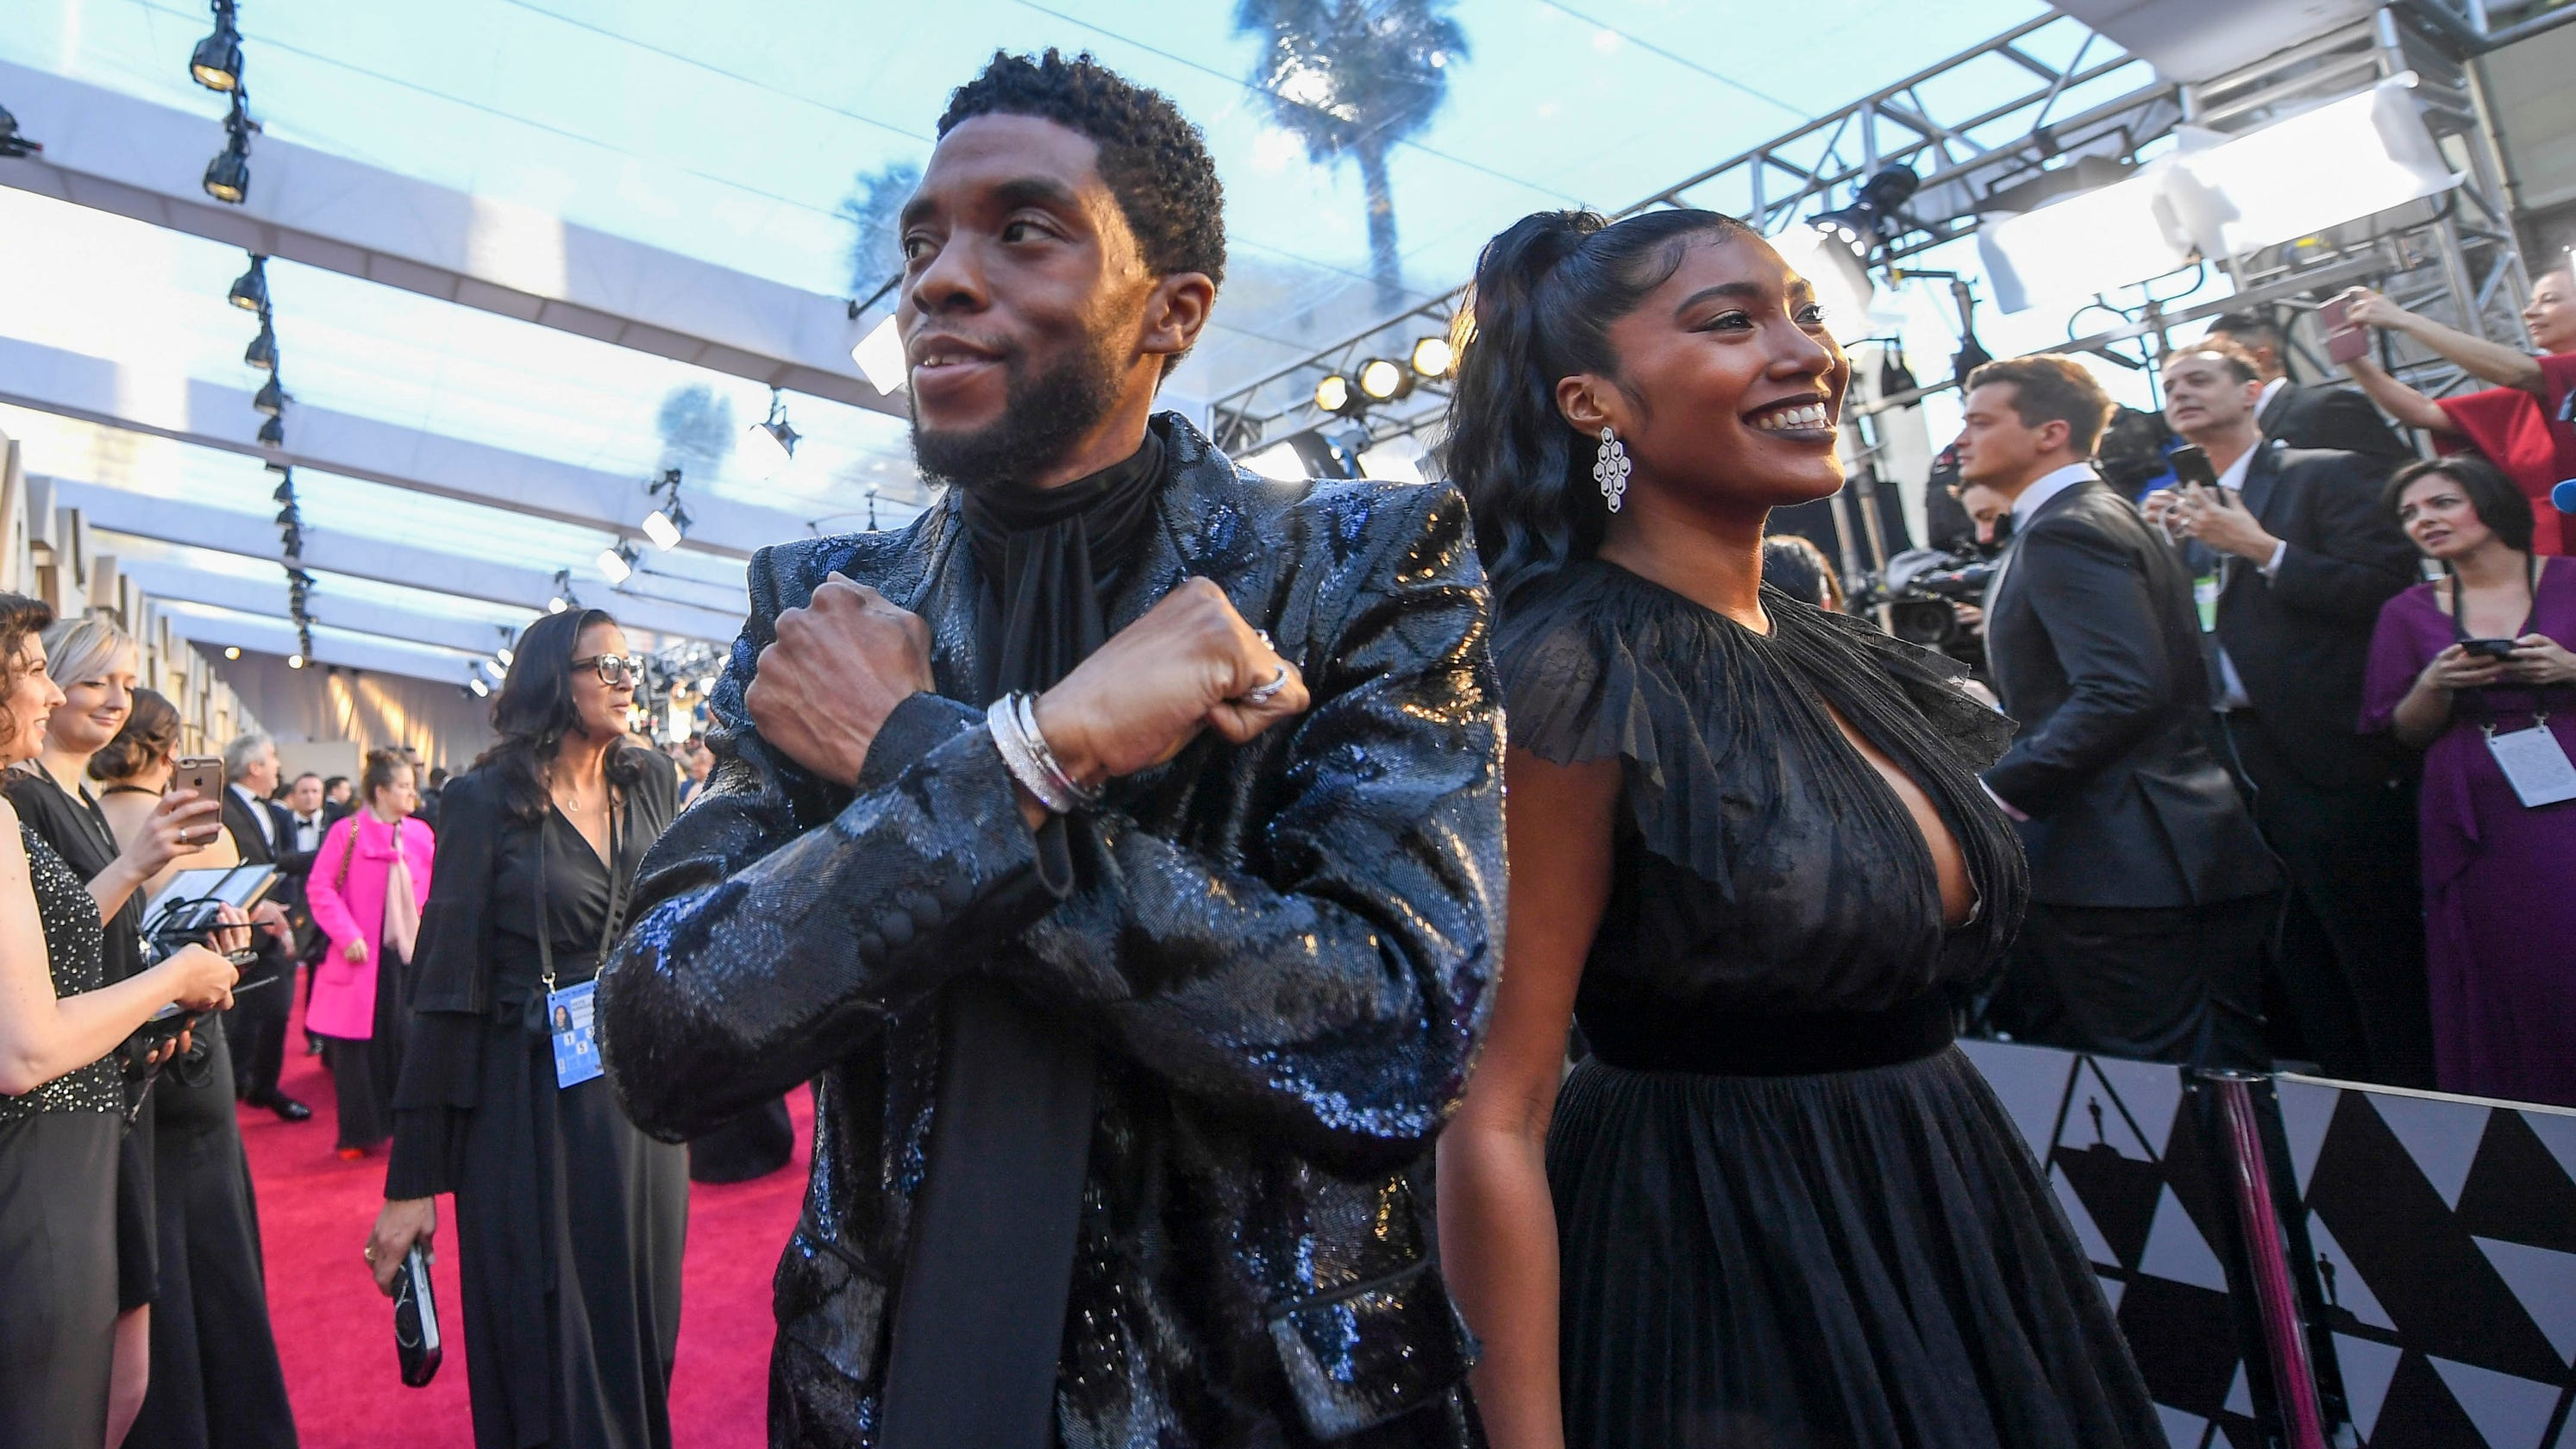 He deserved more: Why Chadwick Boseman's posthumous Oscar loss stings so much